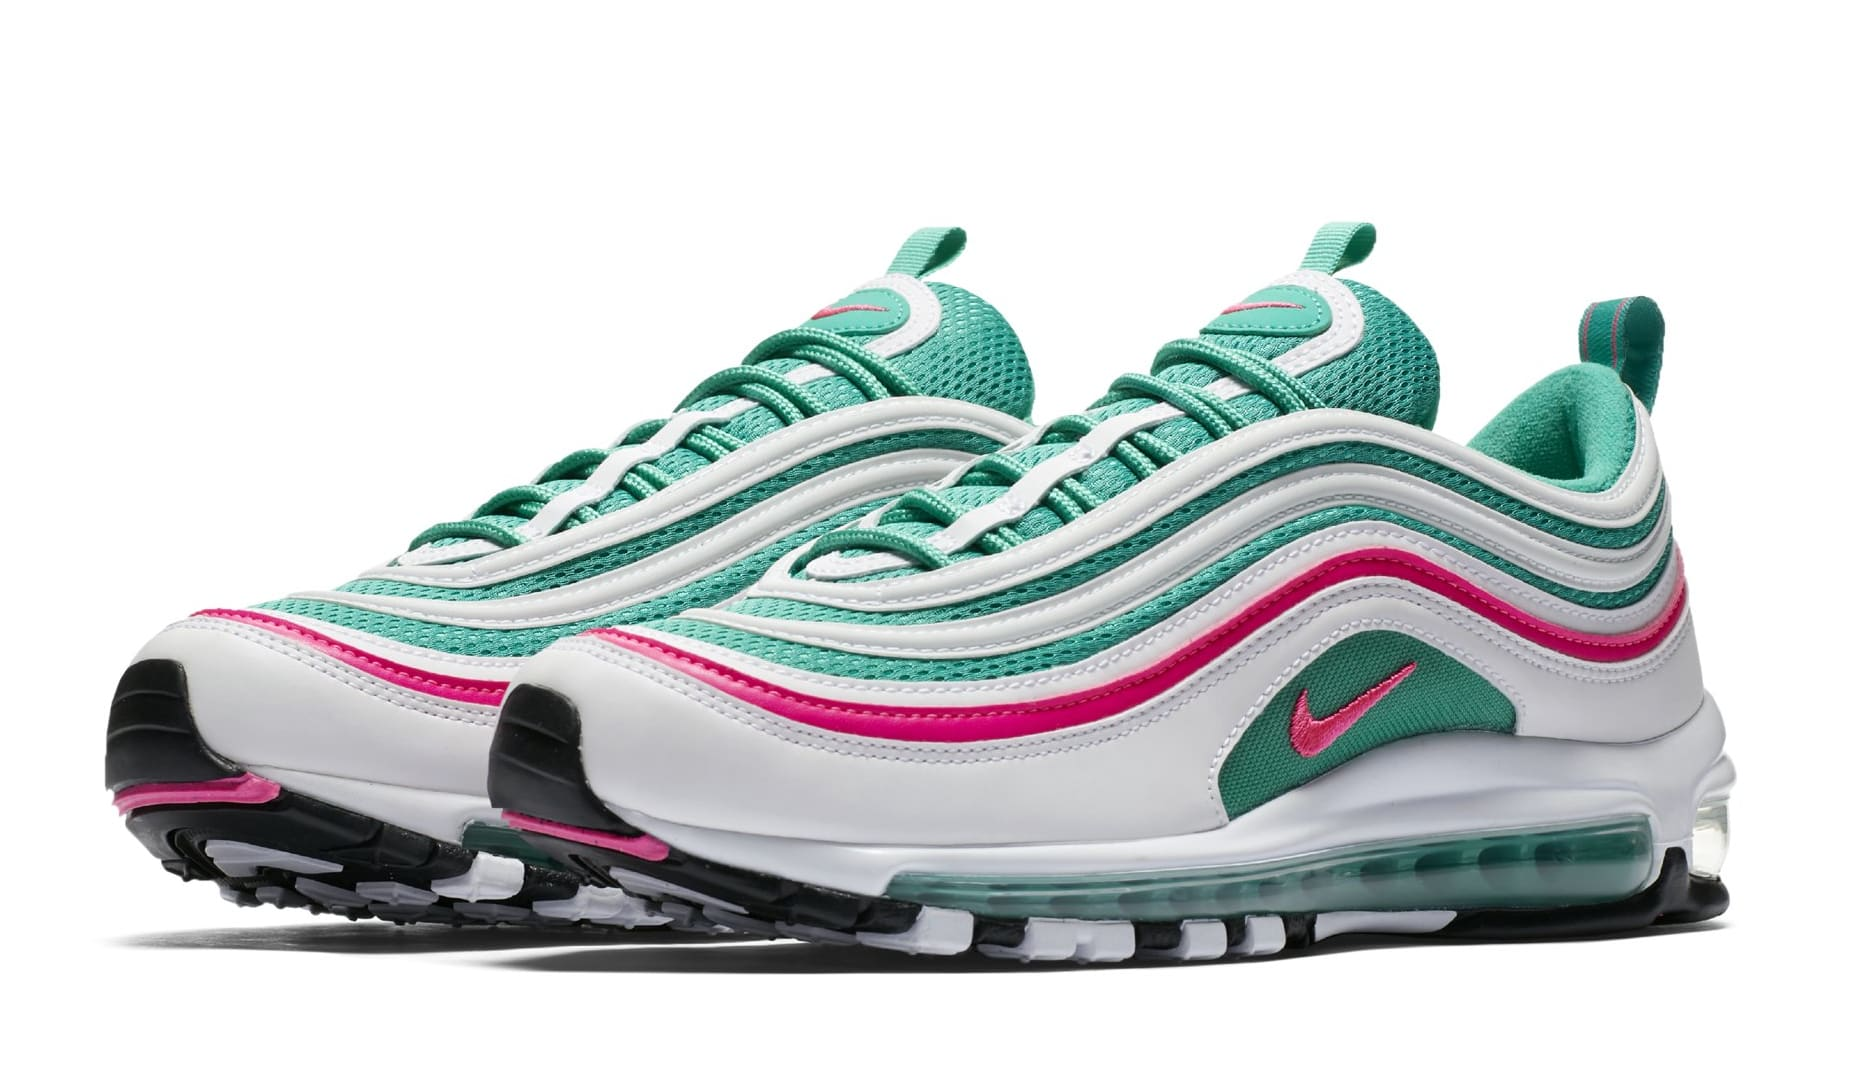 2018 Nike Air Max 97 South Beach Miami OG 921826-102 Green Pink Size 13 New